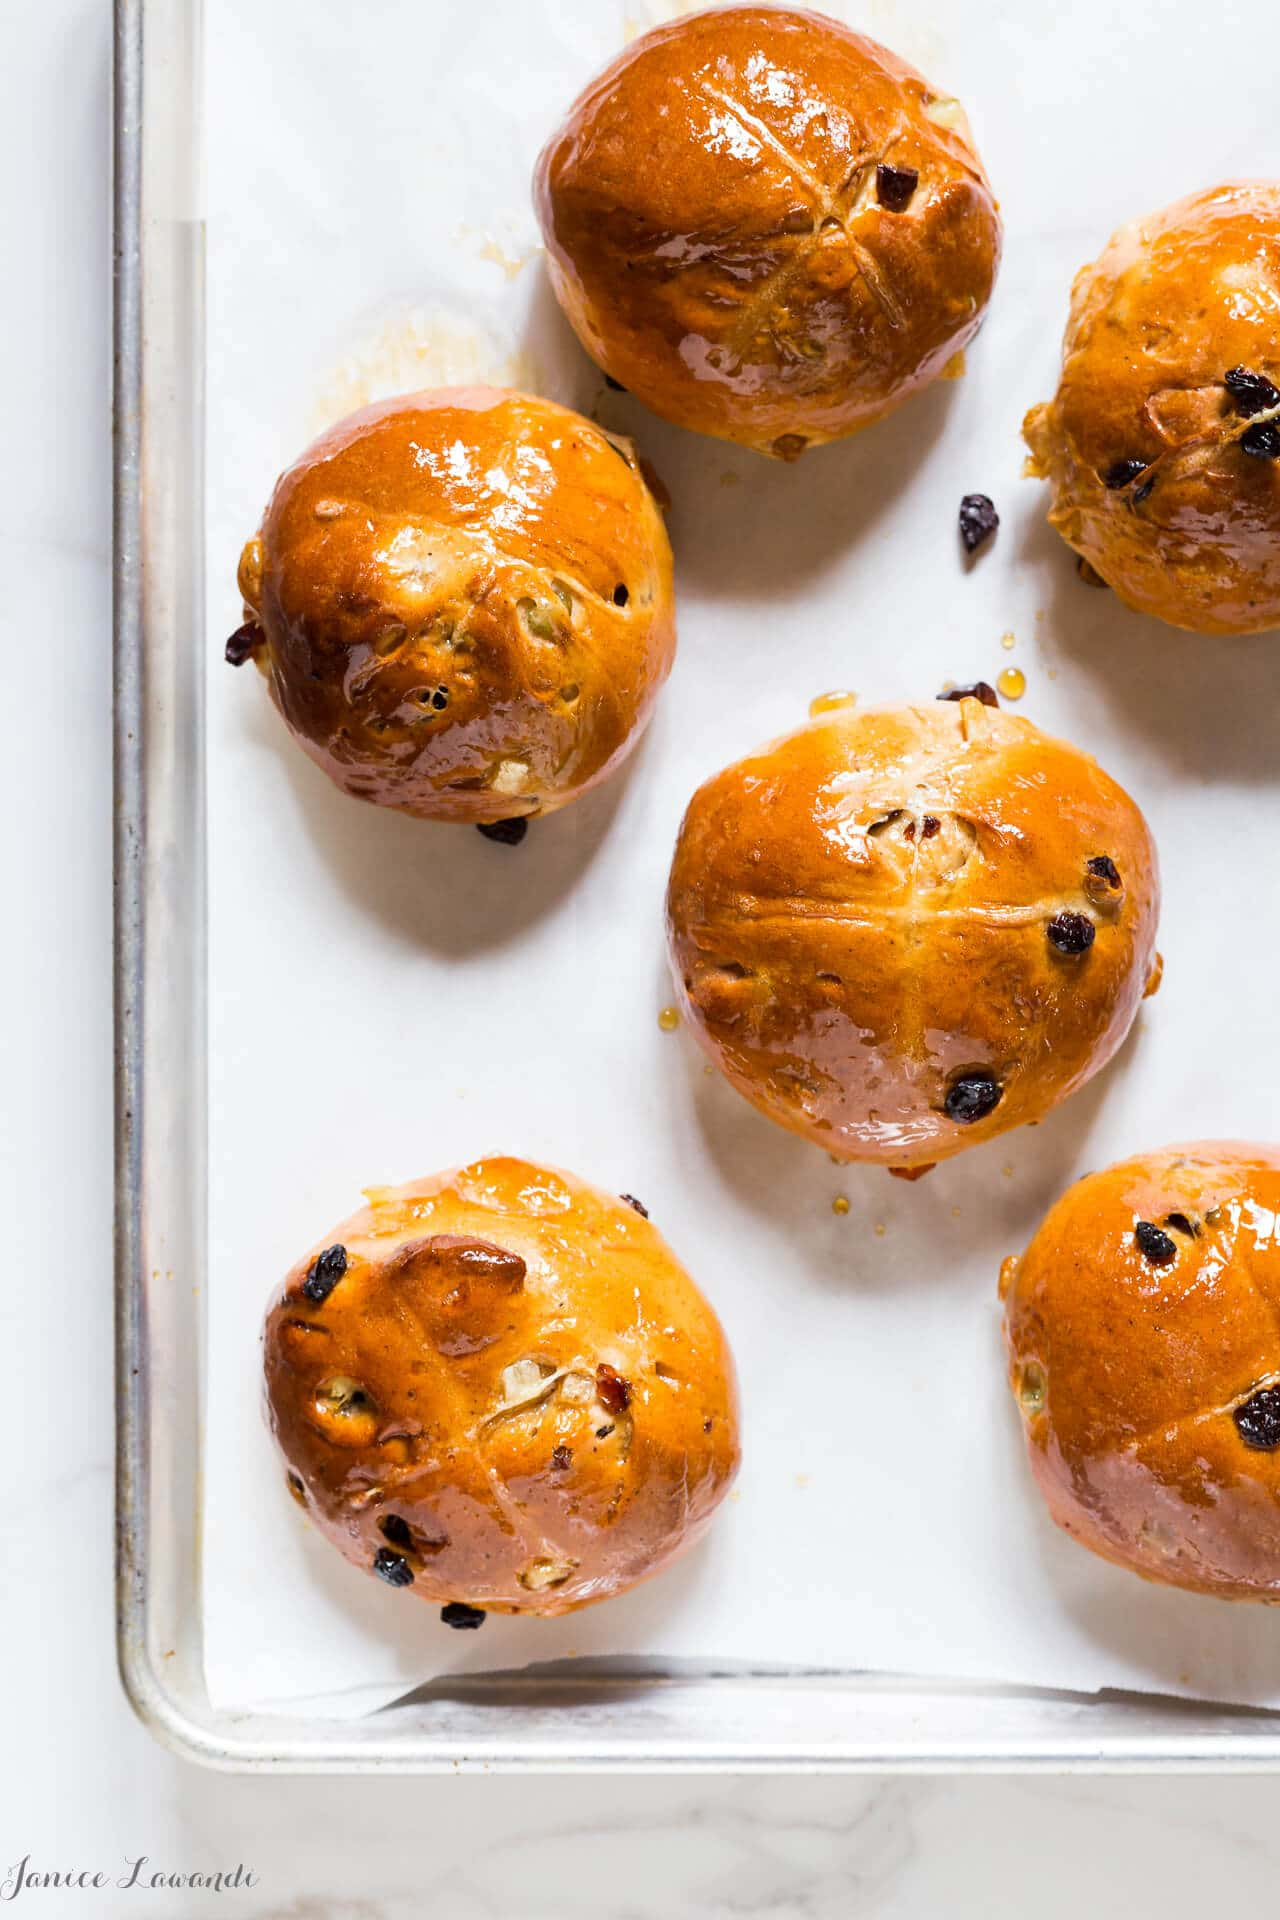 A baking sheet of round homemade hot cross buns with raisins and glazed with maple syrup